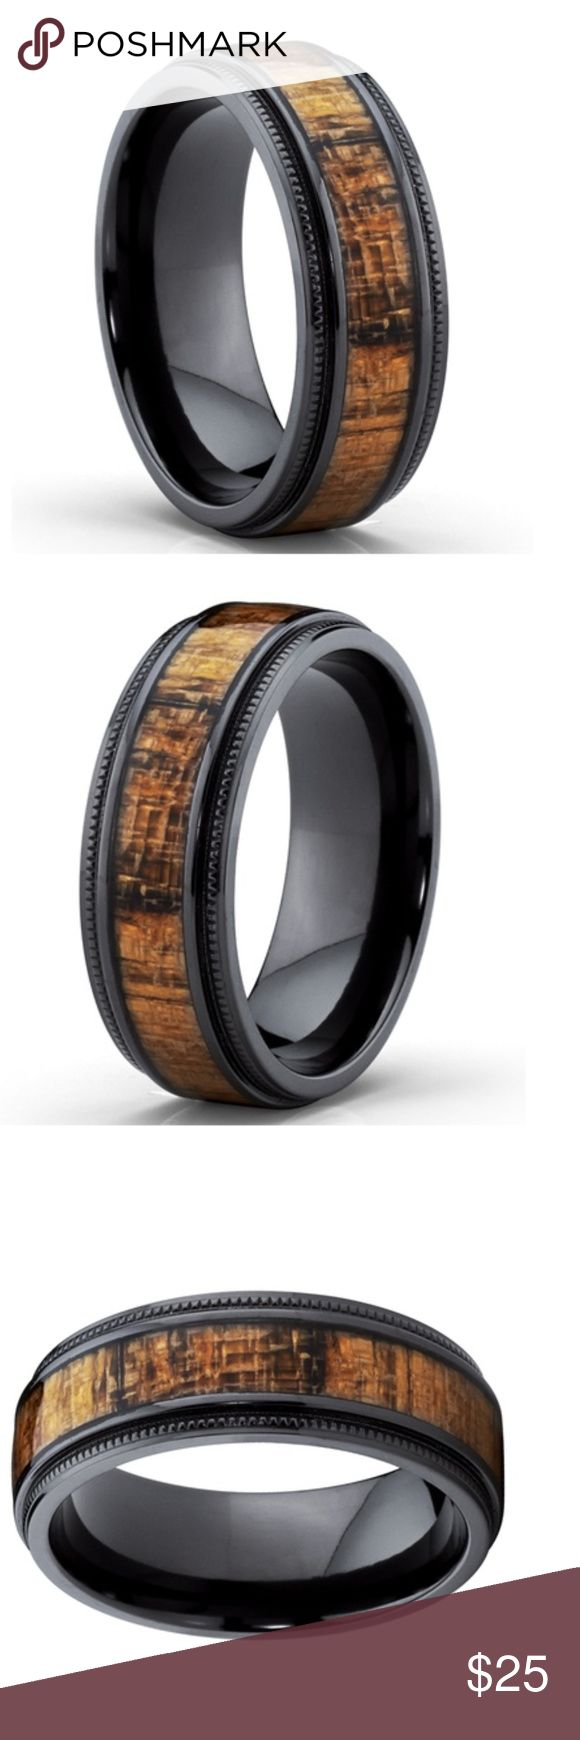 Black Titanium Wedding Band with Real Koa Wood!!! Black Titanium Wedding Band with Real Koa Wood Inlay, Milgrain Ring comfort fit 8MM Size10.5 Accessories Jewelry